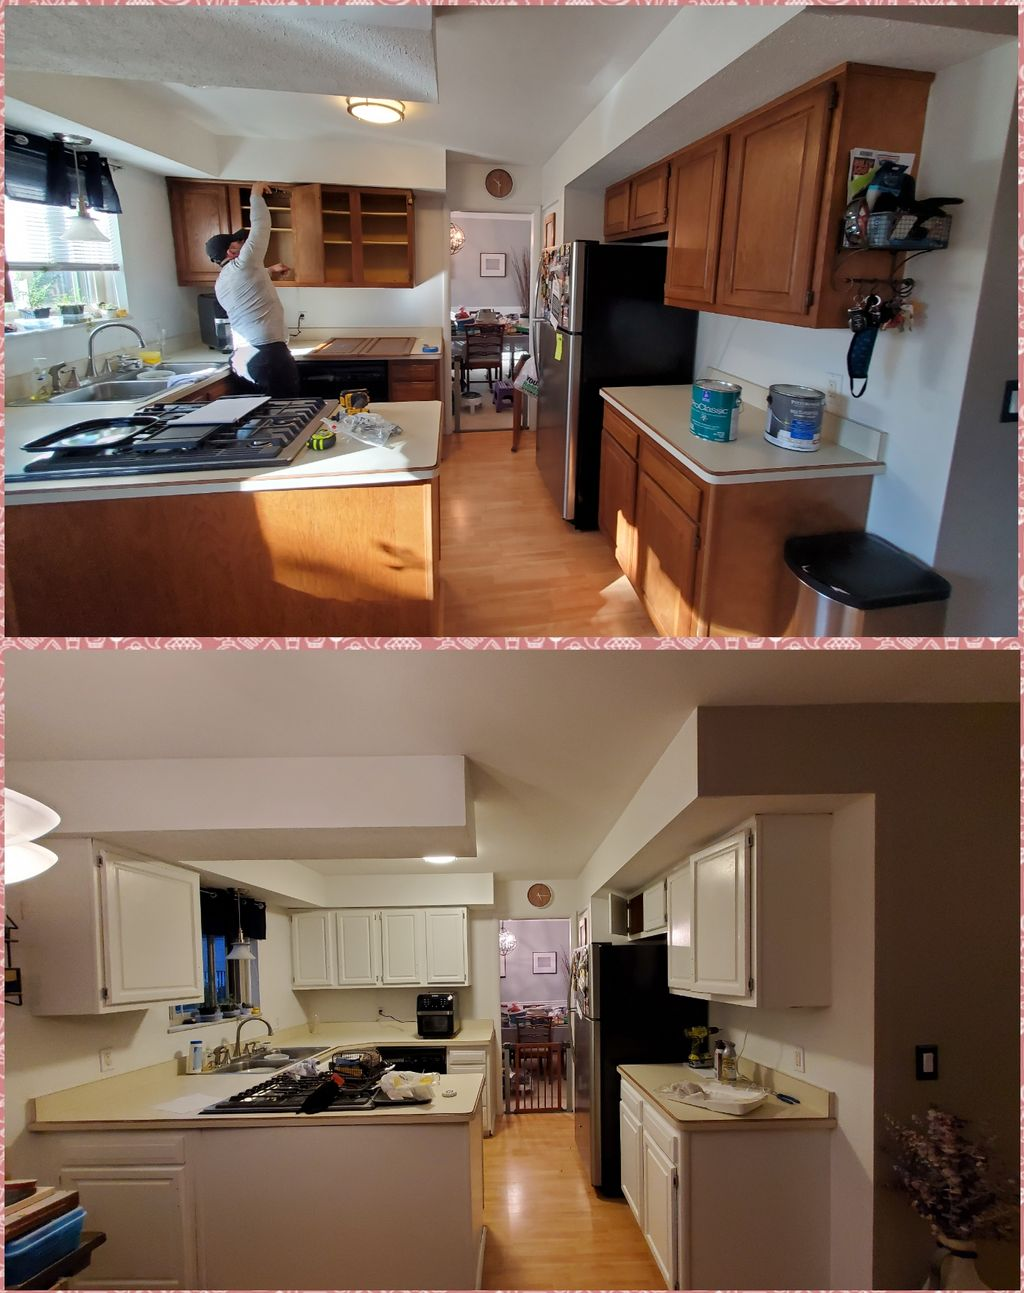 Kitchen cabinets, room paneling, ceiling and stairways